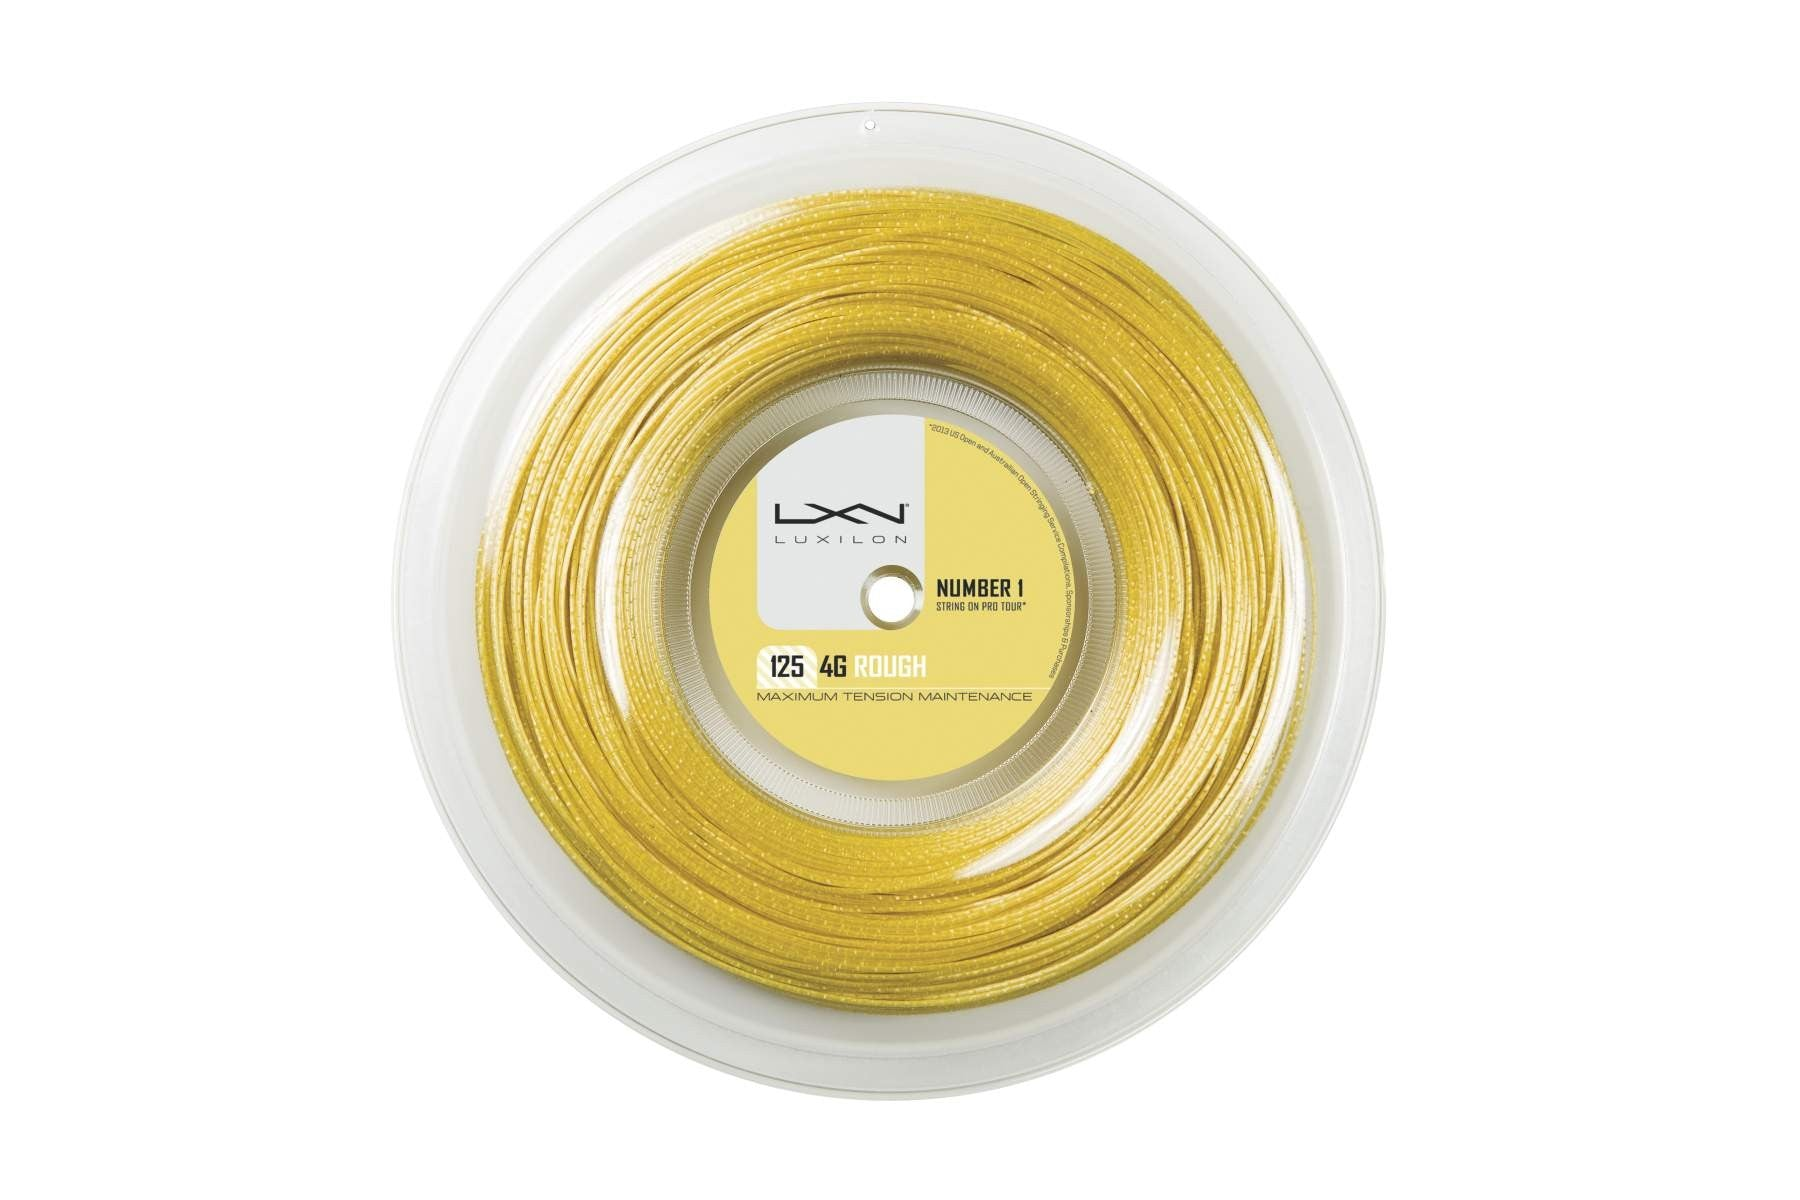 Wilson Luxilon 4G Rough 125 Reel Tennis String - atr-sports